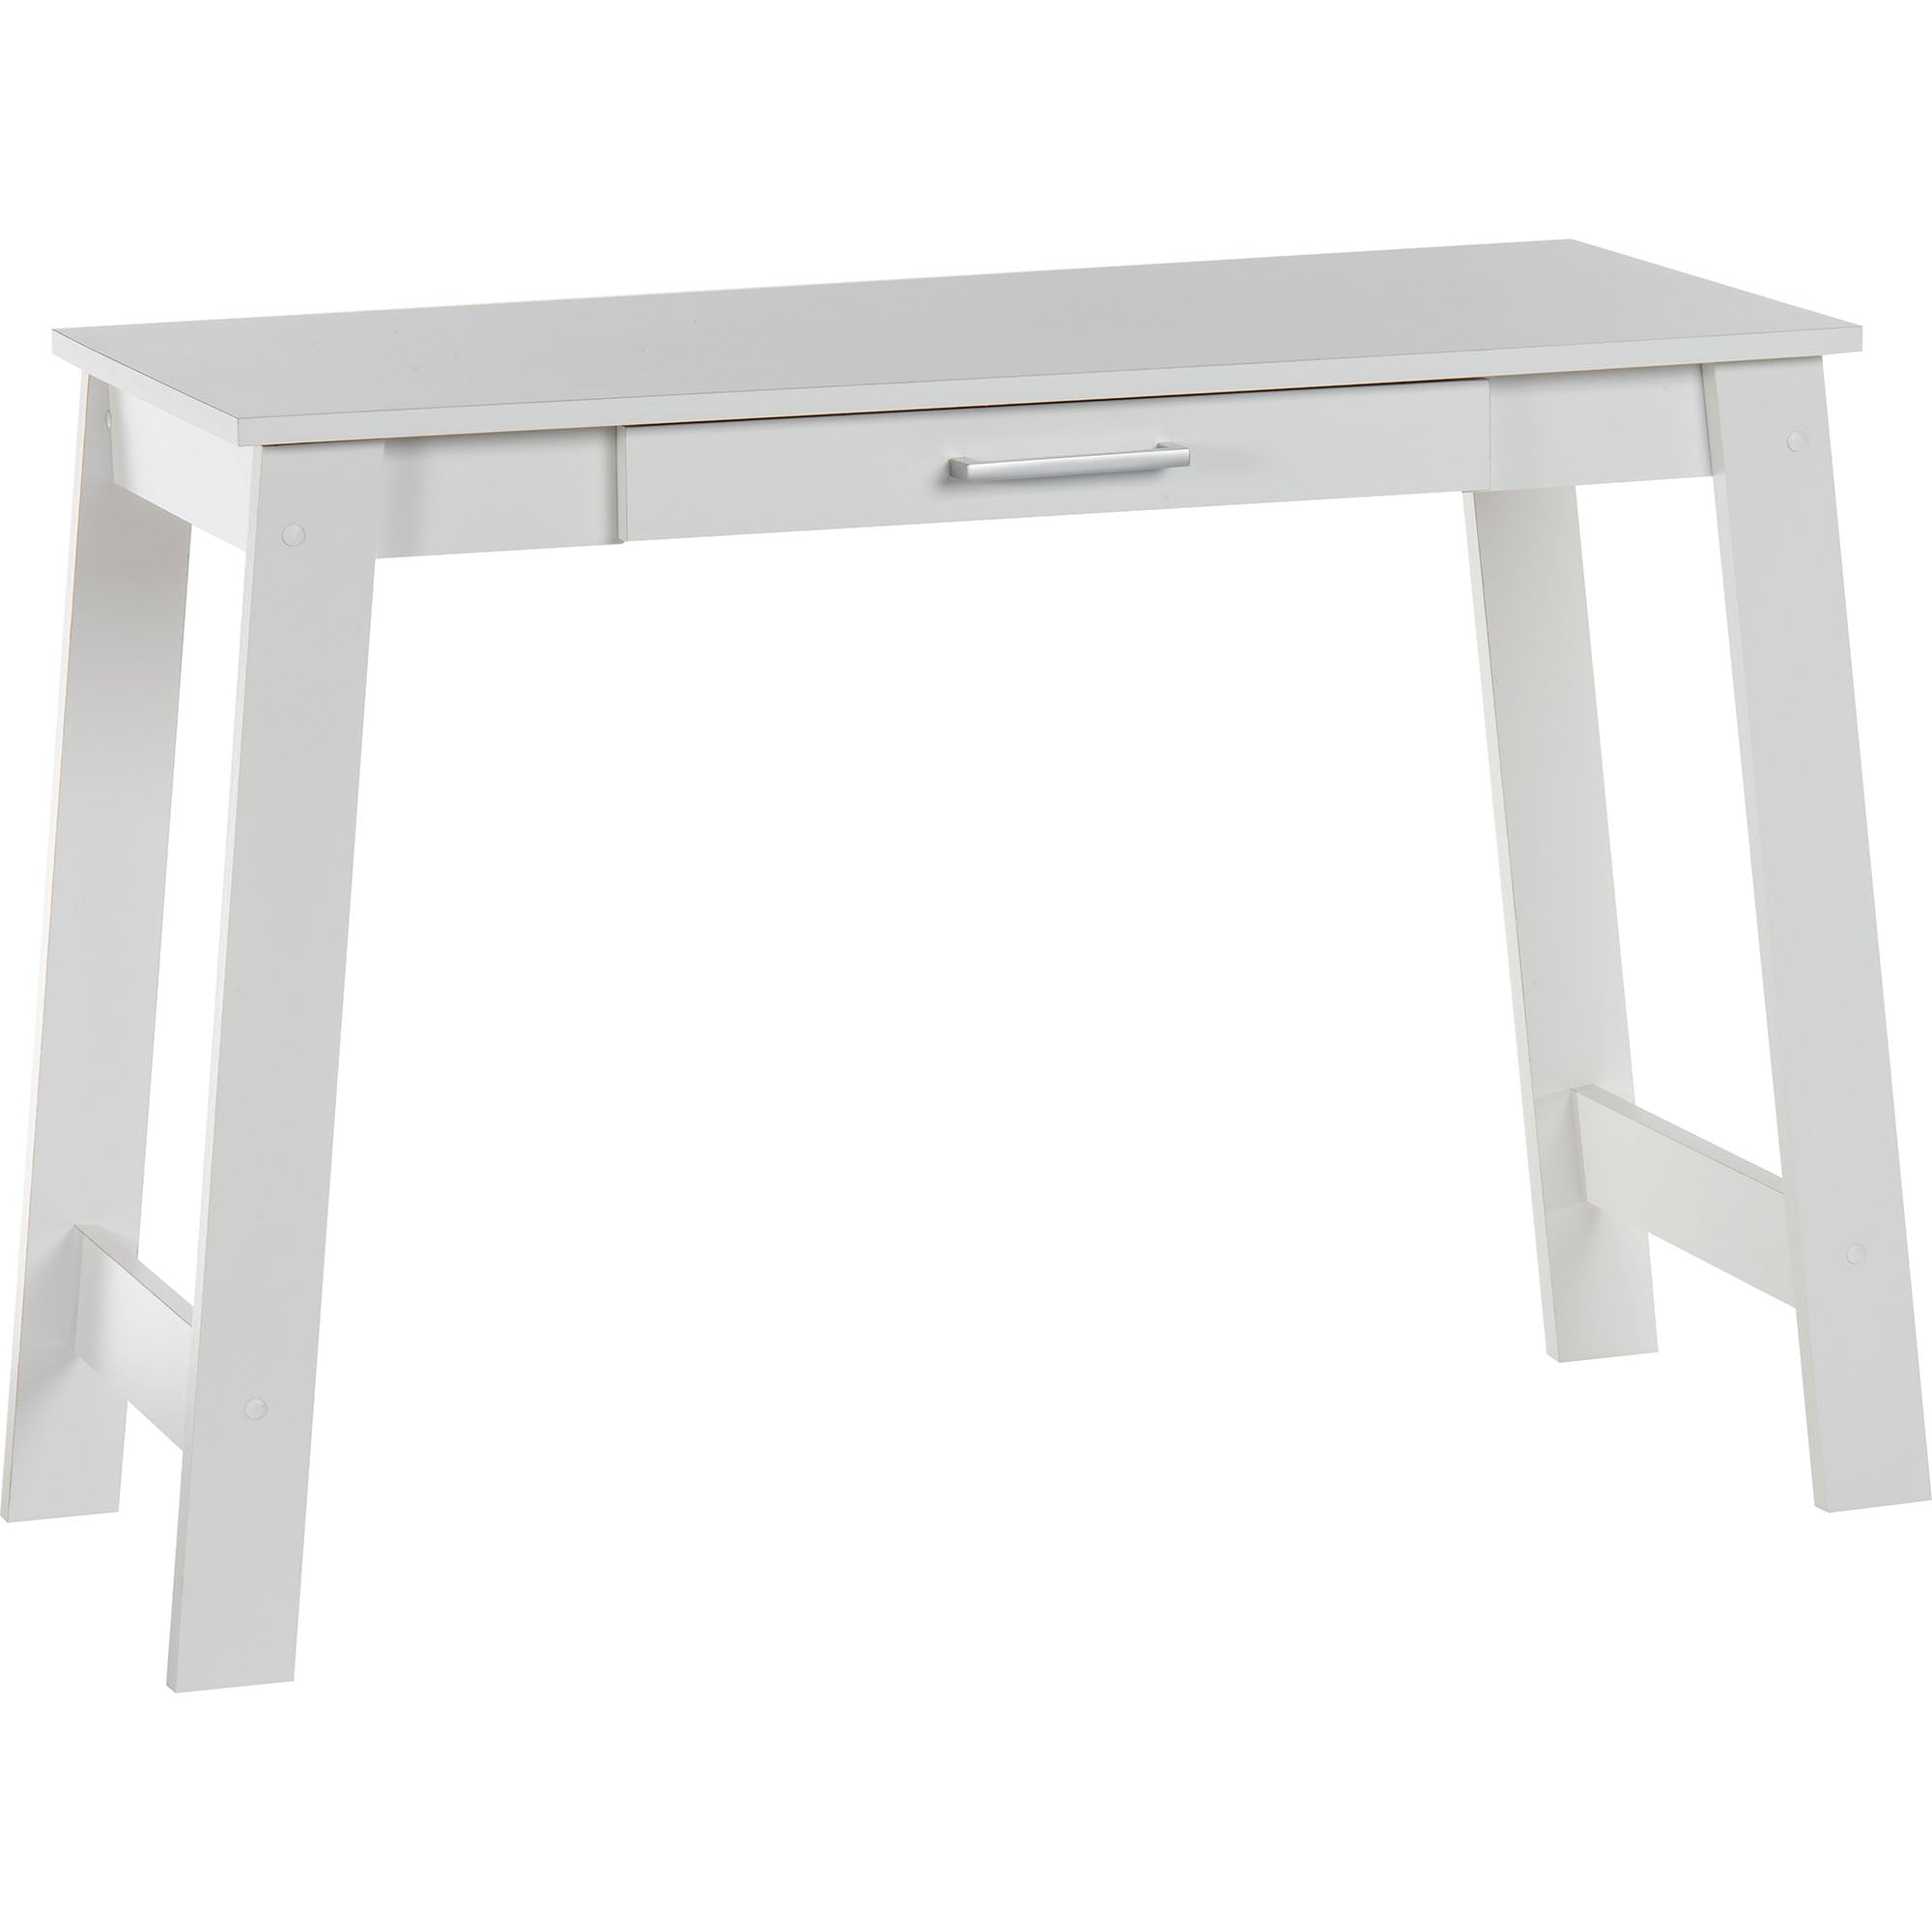 white trestle products horigan oak urban table desk forest product img